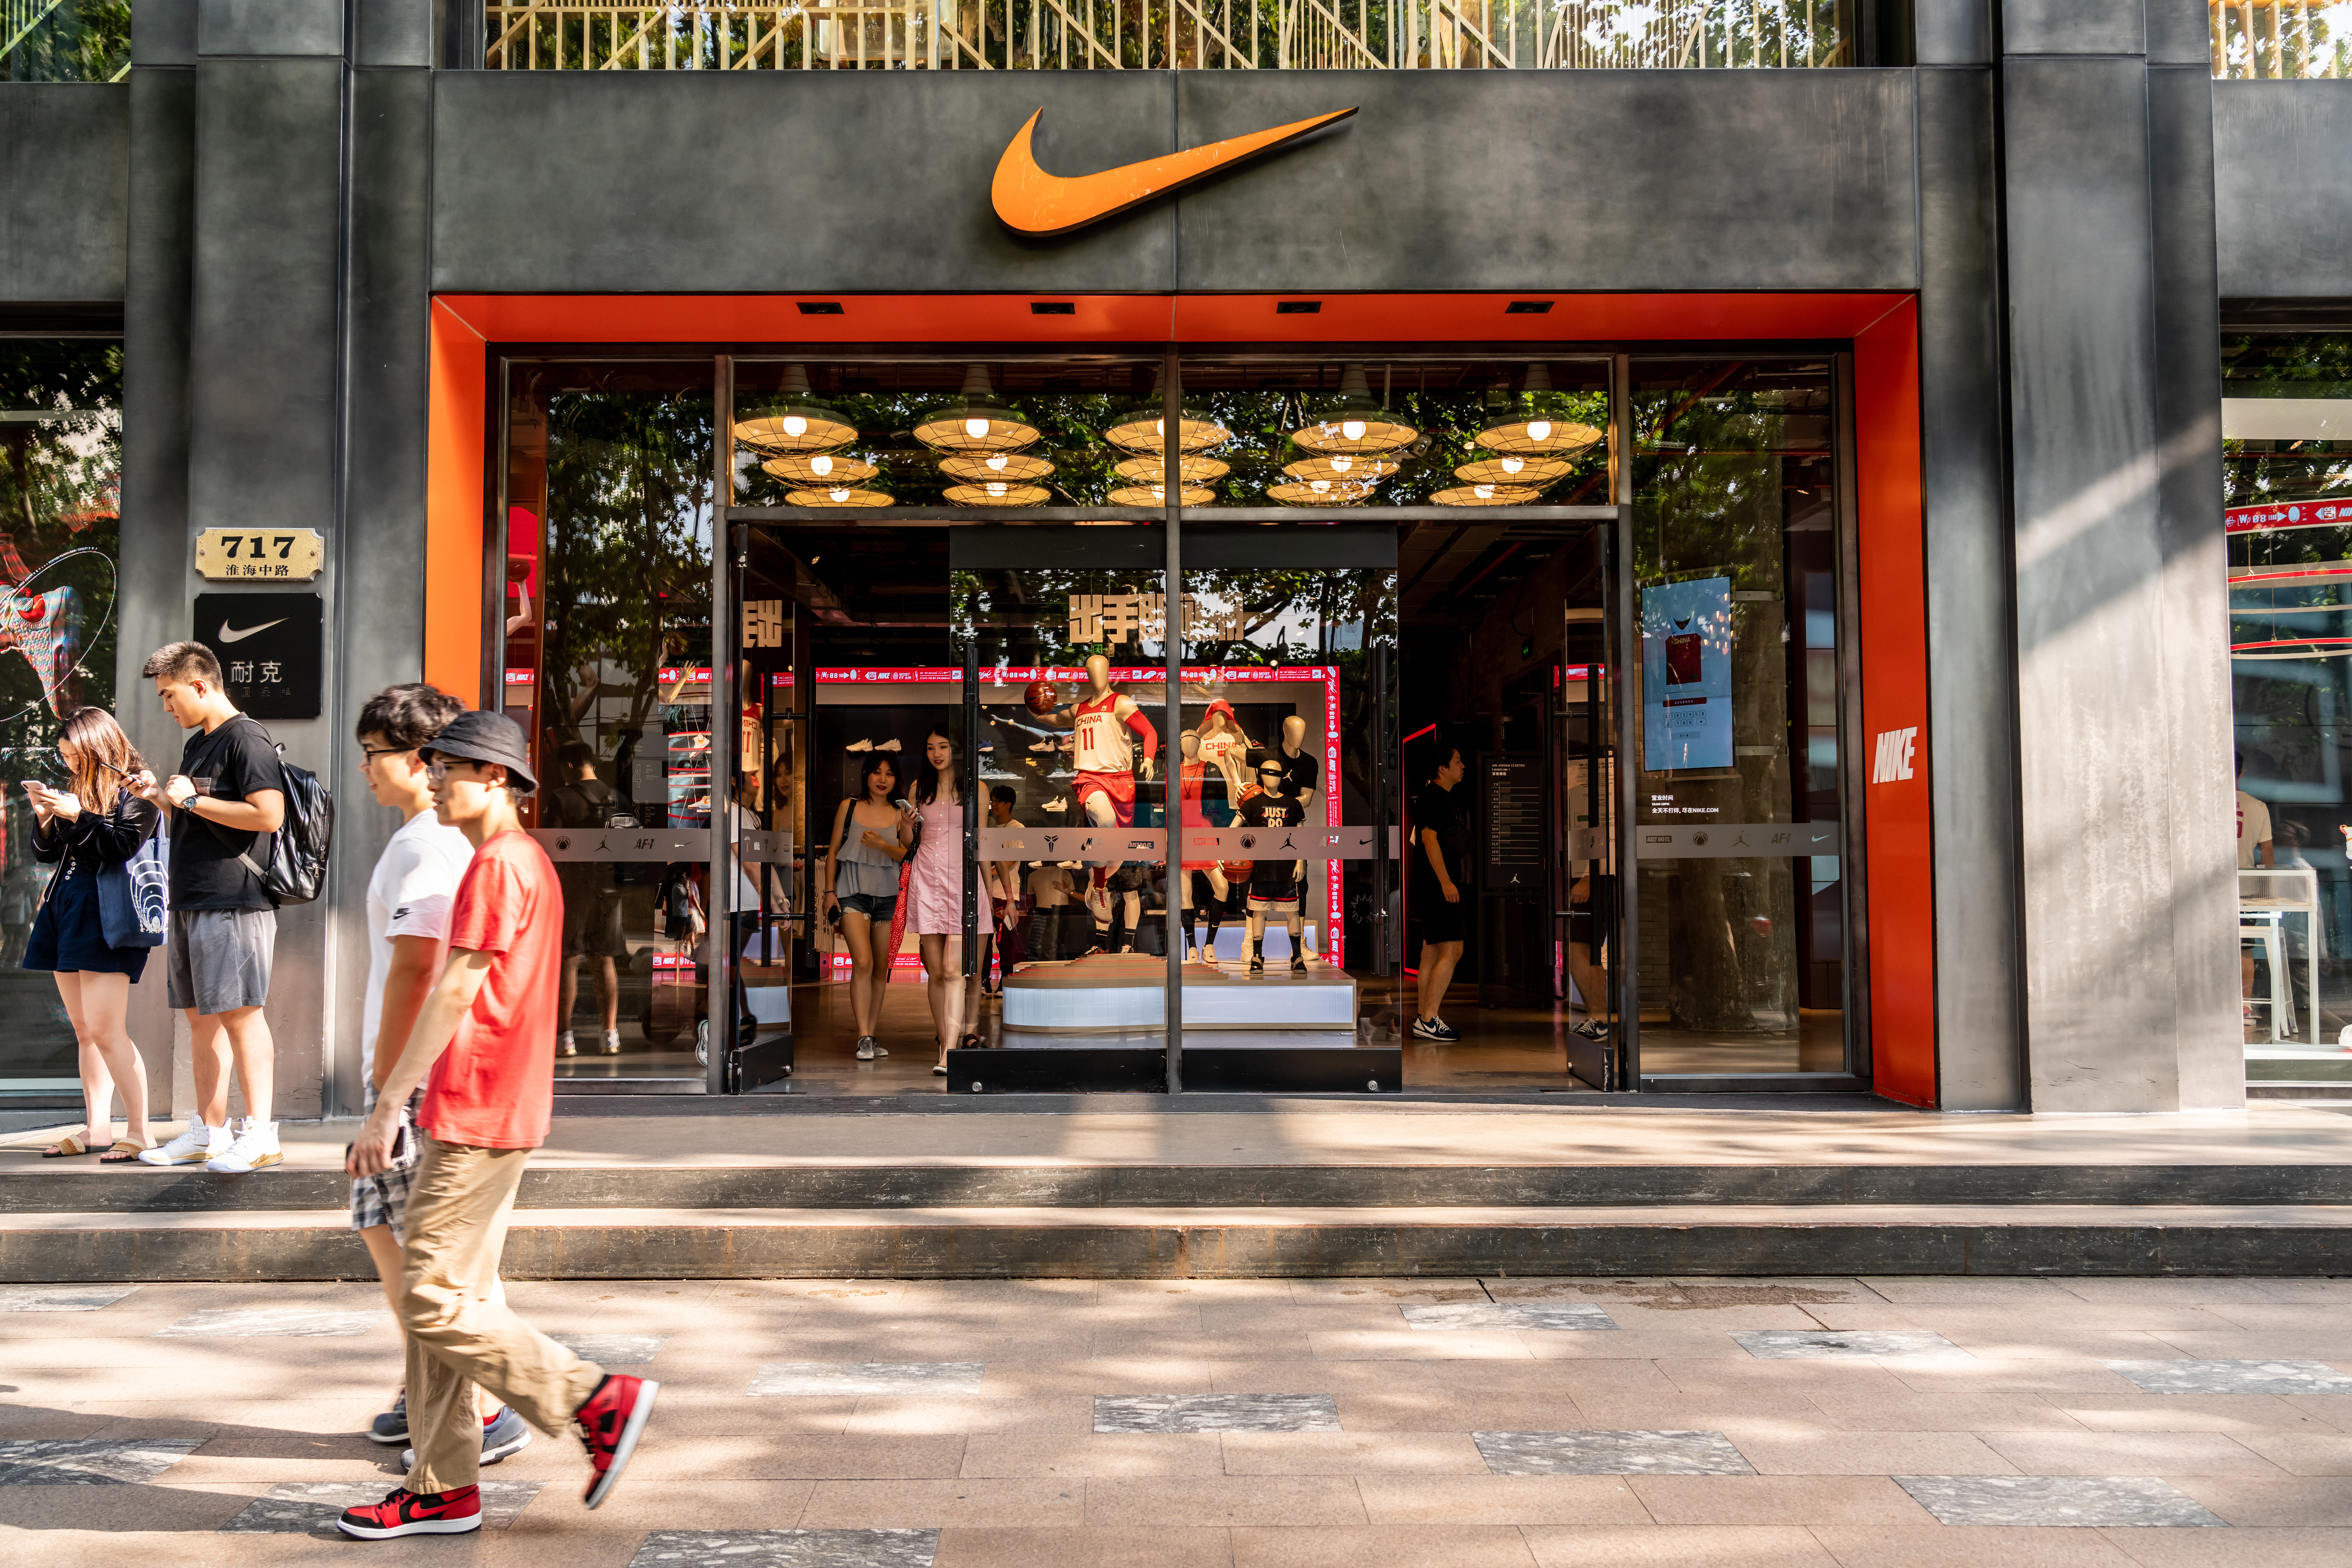 SHANGHAI, CHINA - 2019/09/07: Pedestrians walk past an American multinational sportswear corporation Nike store in Shanghai. (Photo by Alex Tai/SOPA Images/LightRocket via Getty Images)